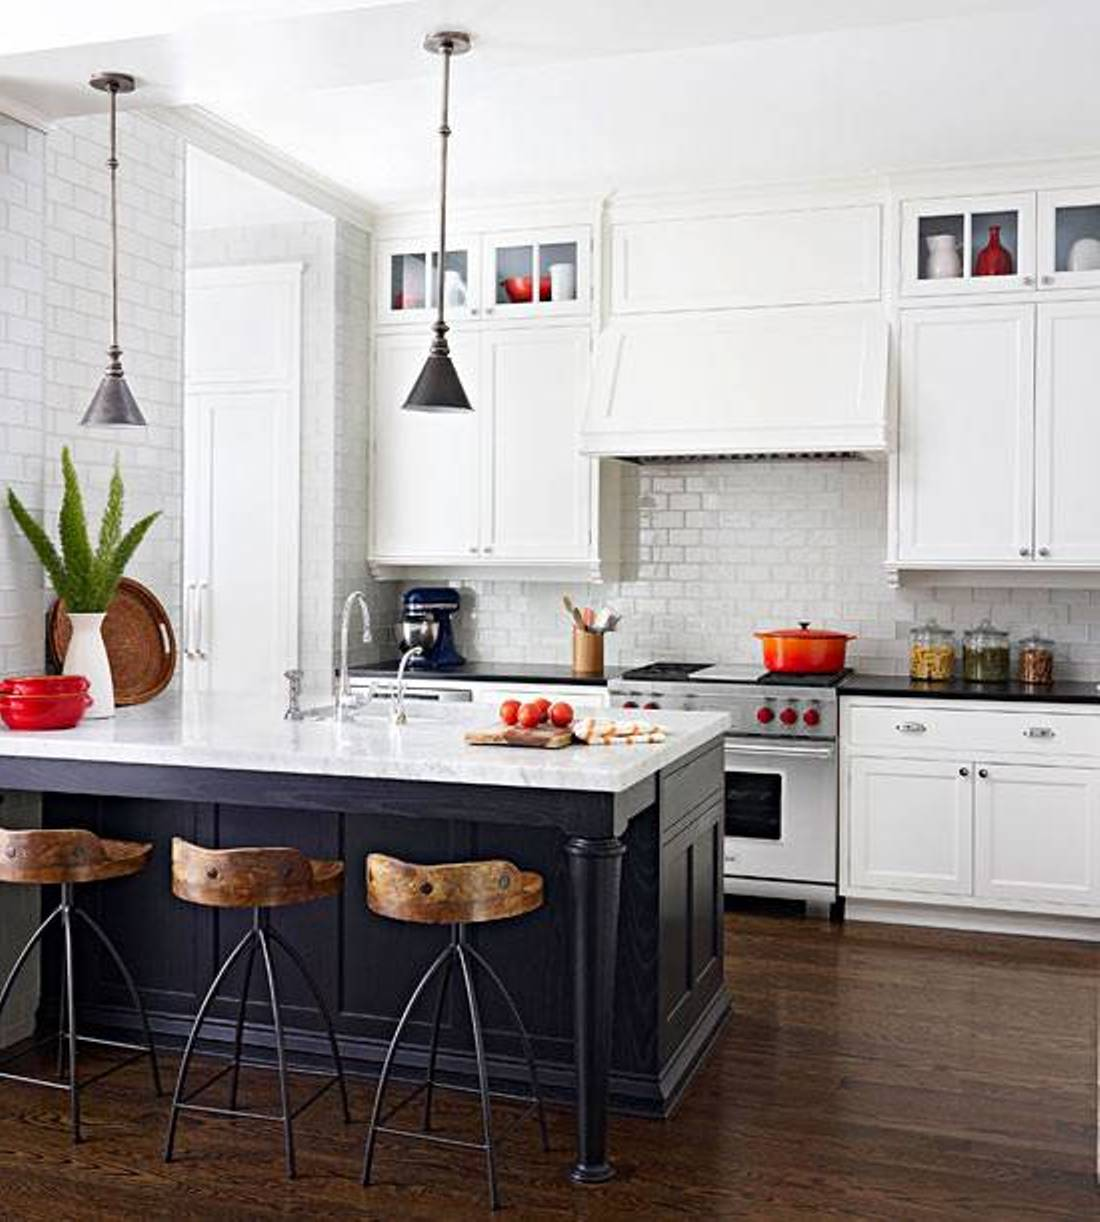 Open Kitchen Layouts: Open Kitchen Design: Why You Need It And How To Style It